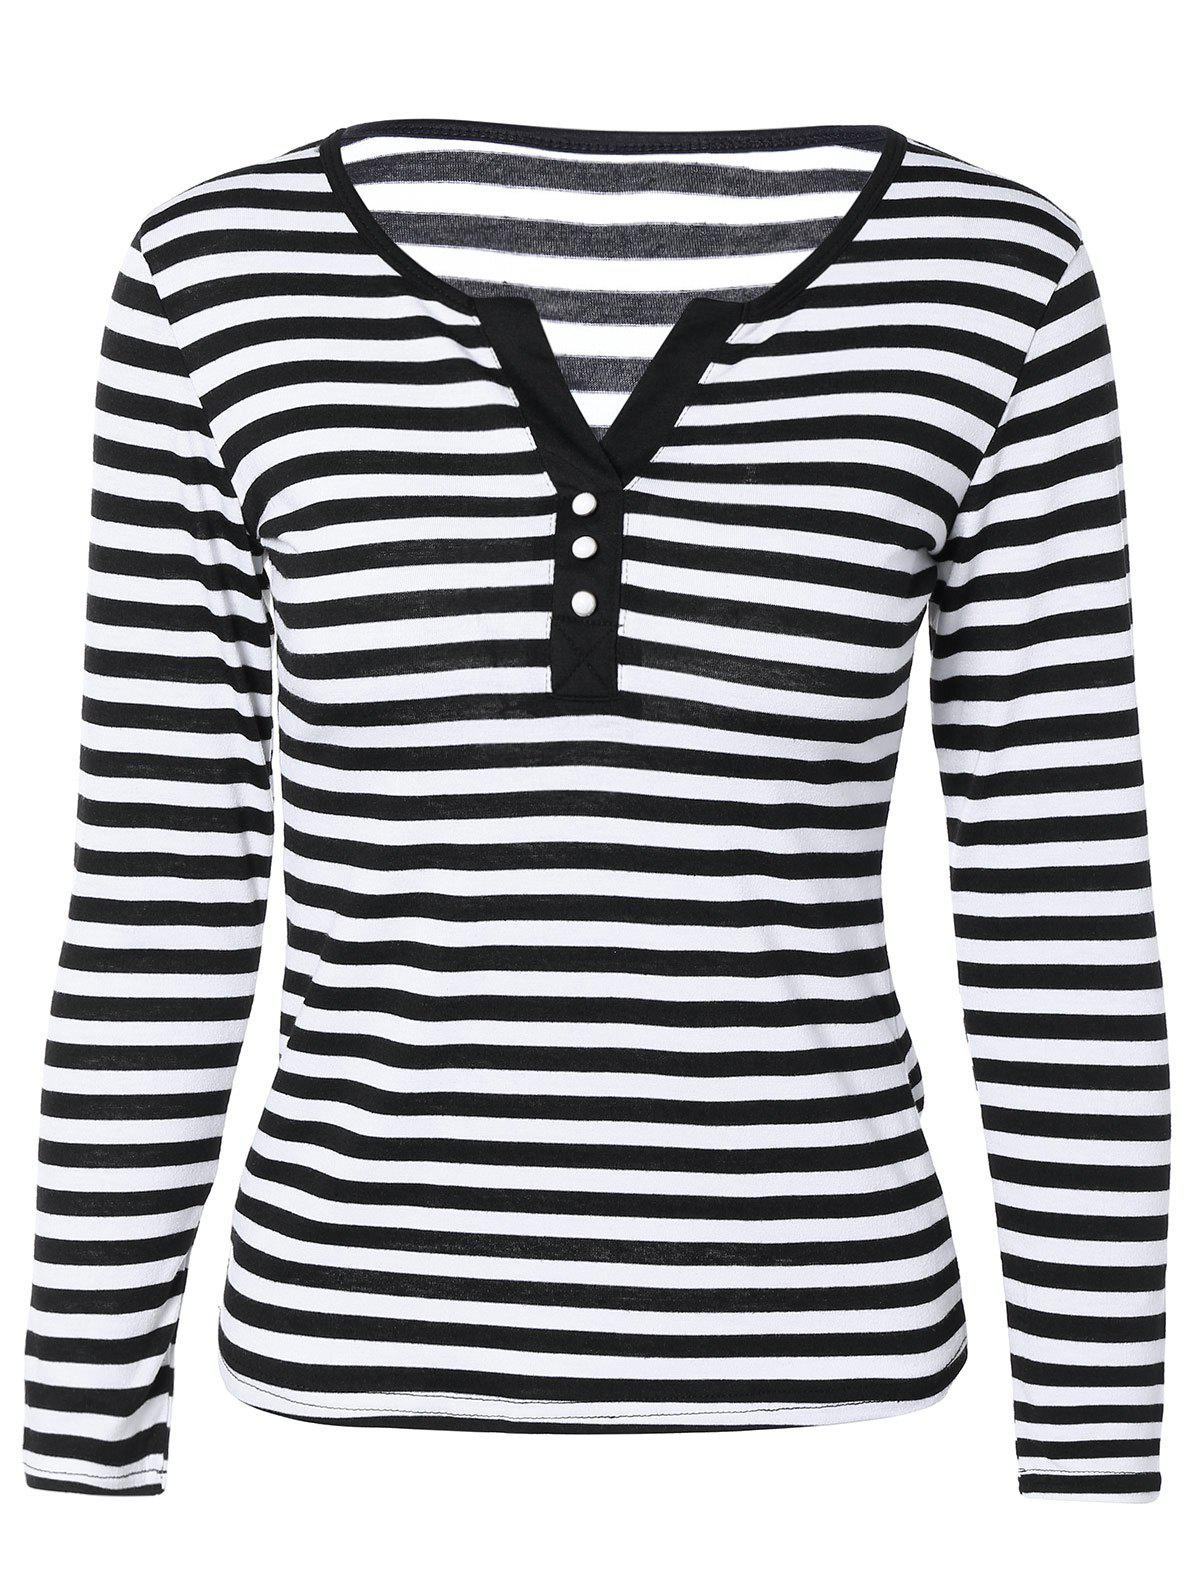 Casual Buttoned Striped Top For Women - WHITE/BLACK 2XL